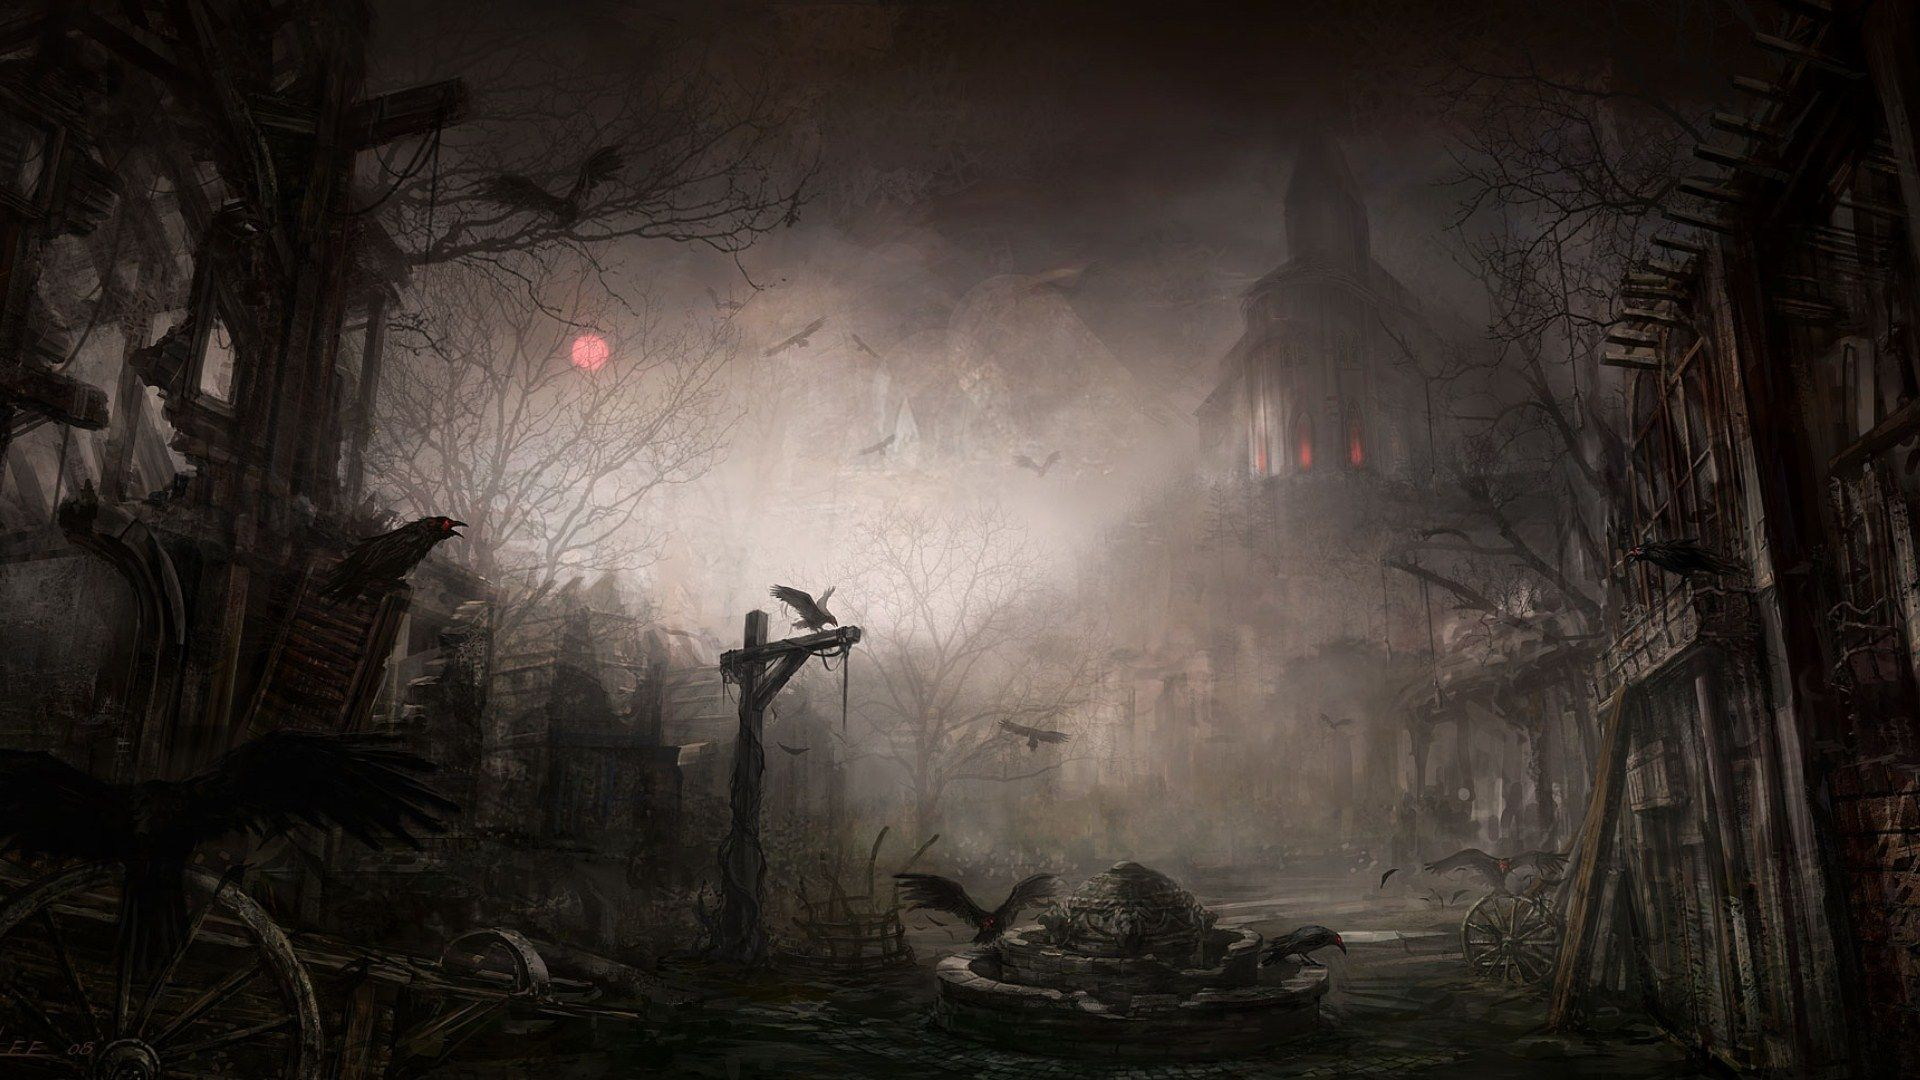 Download Creepy Landscape Wallpaper 1080p For Iphone Pc Desktop Android Or Mac Desktop Hd Gothic Wallpaper Fantasy City Scary Backgrounds